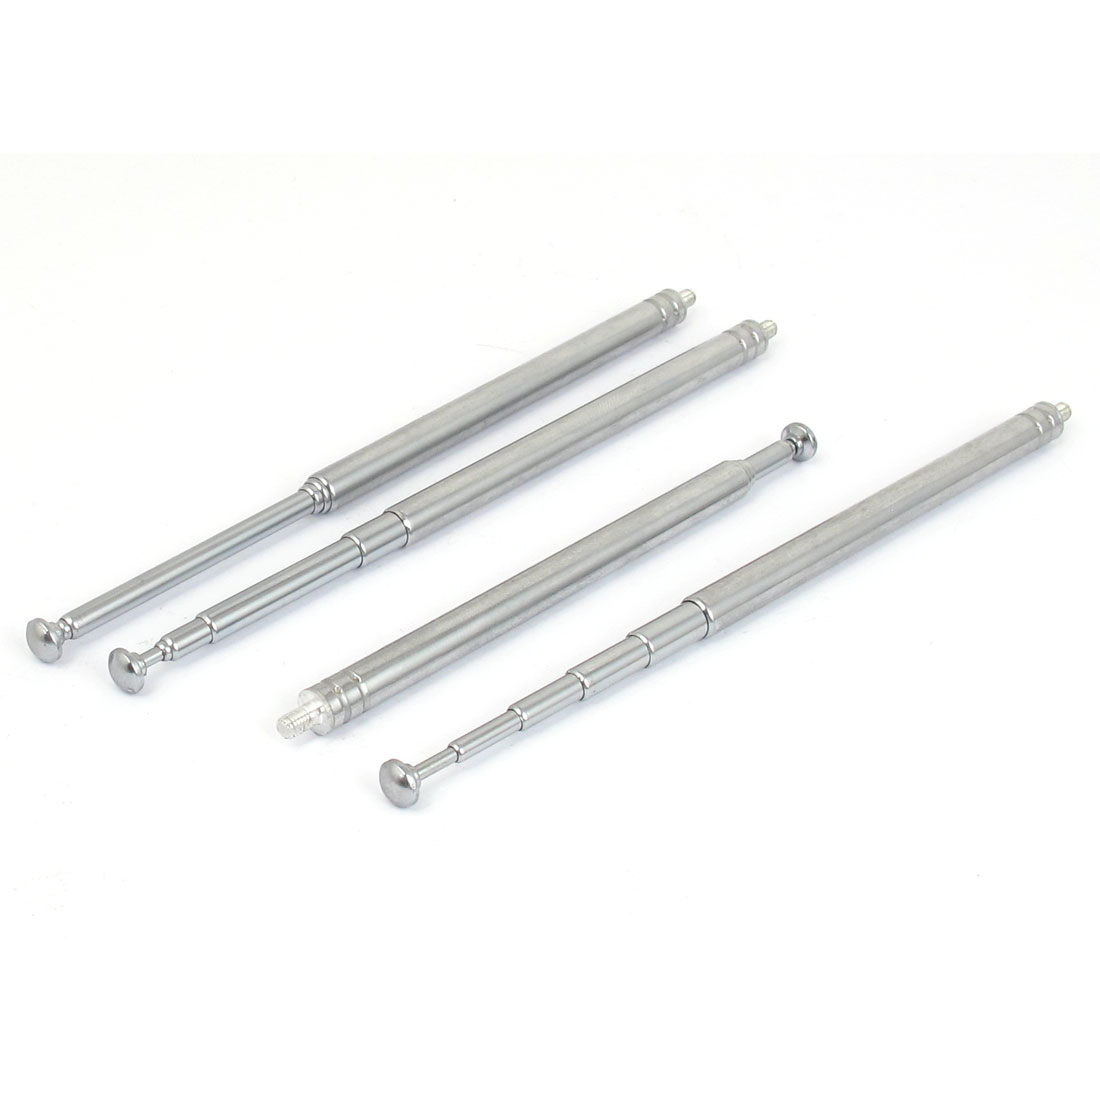 4pcs 3760mm Long Metal Rod Telescopic 6 Sections Antenna Aerial Mast for RC Radio Control